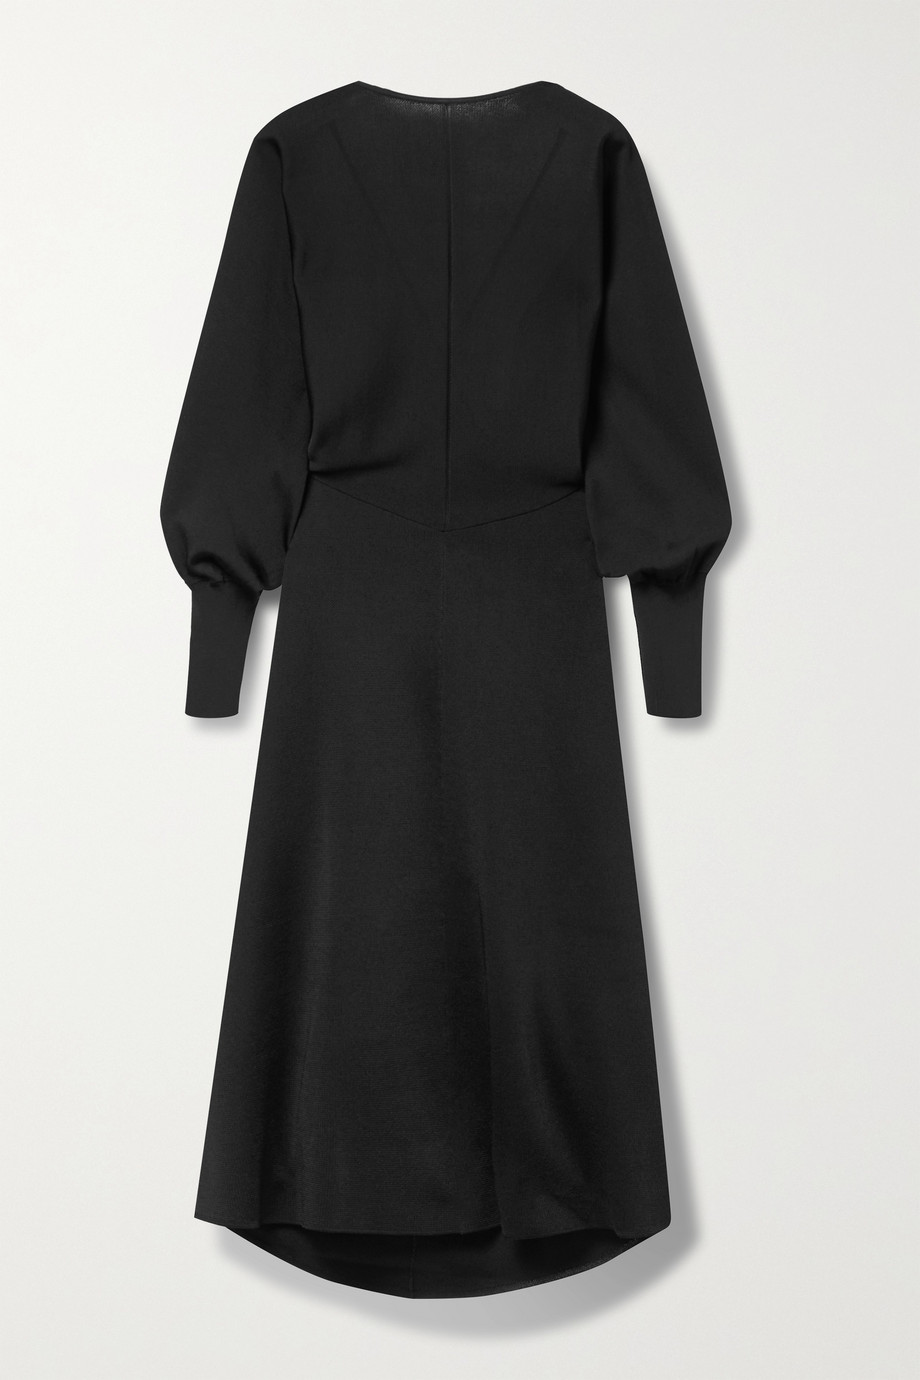 Victoria Beckham Open-back stretch-knit midi dress